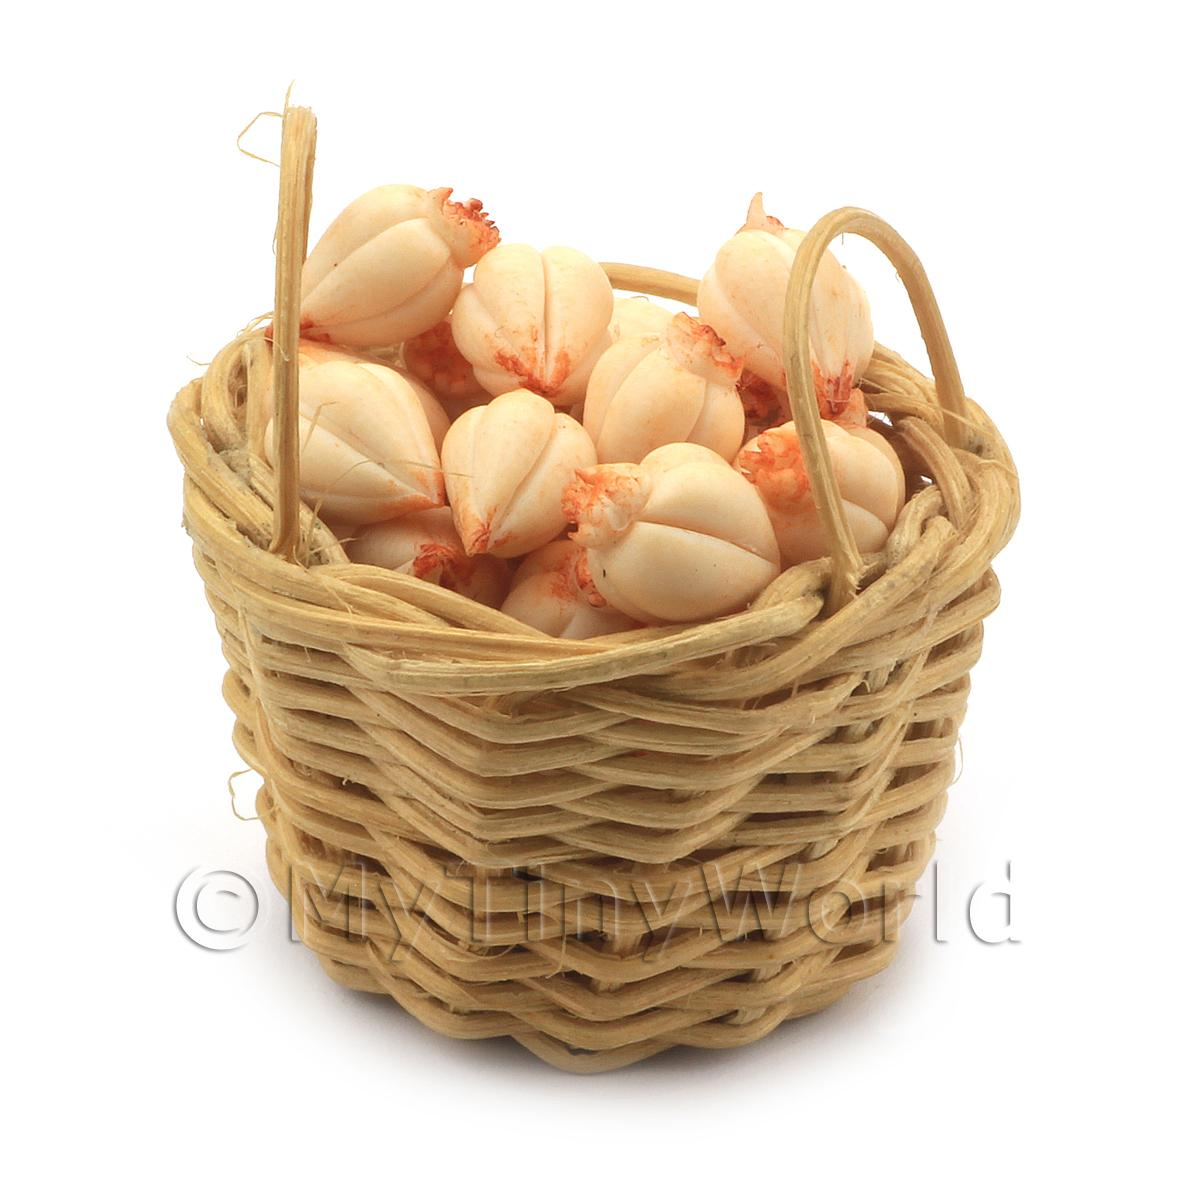 Dolls House Miniature Basket of Handmade Garlic Bulbs